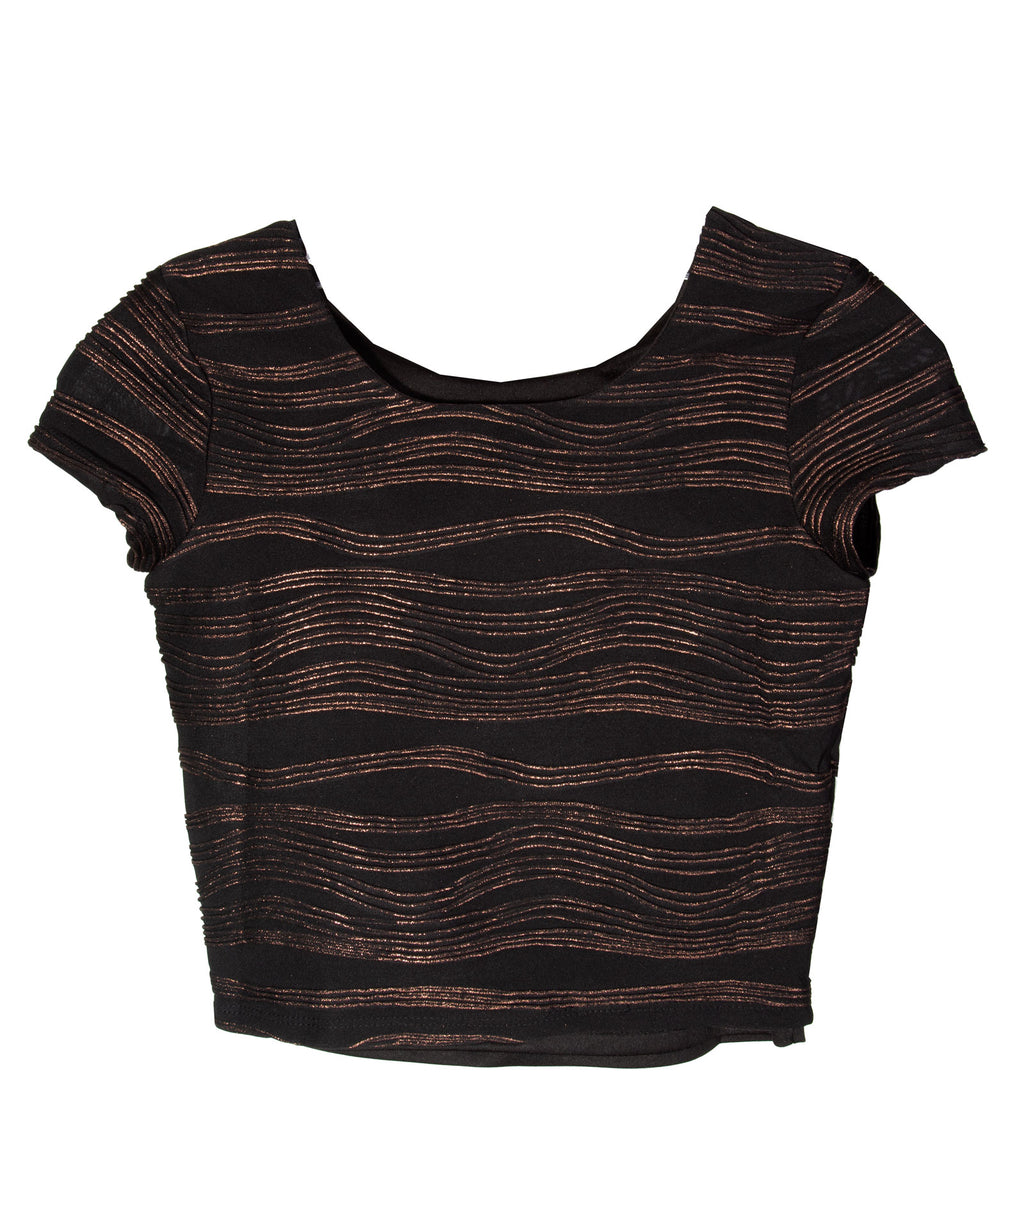 By Debra Girls Bronze Party Top